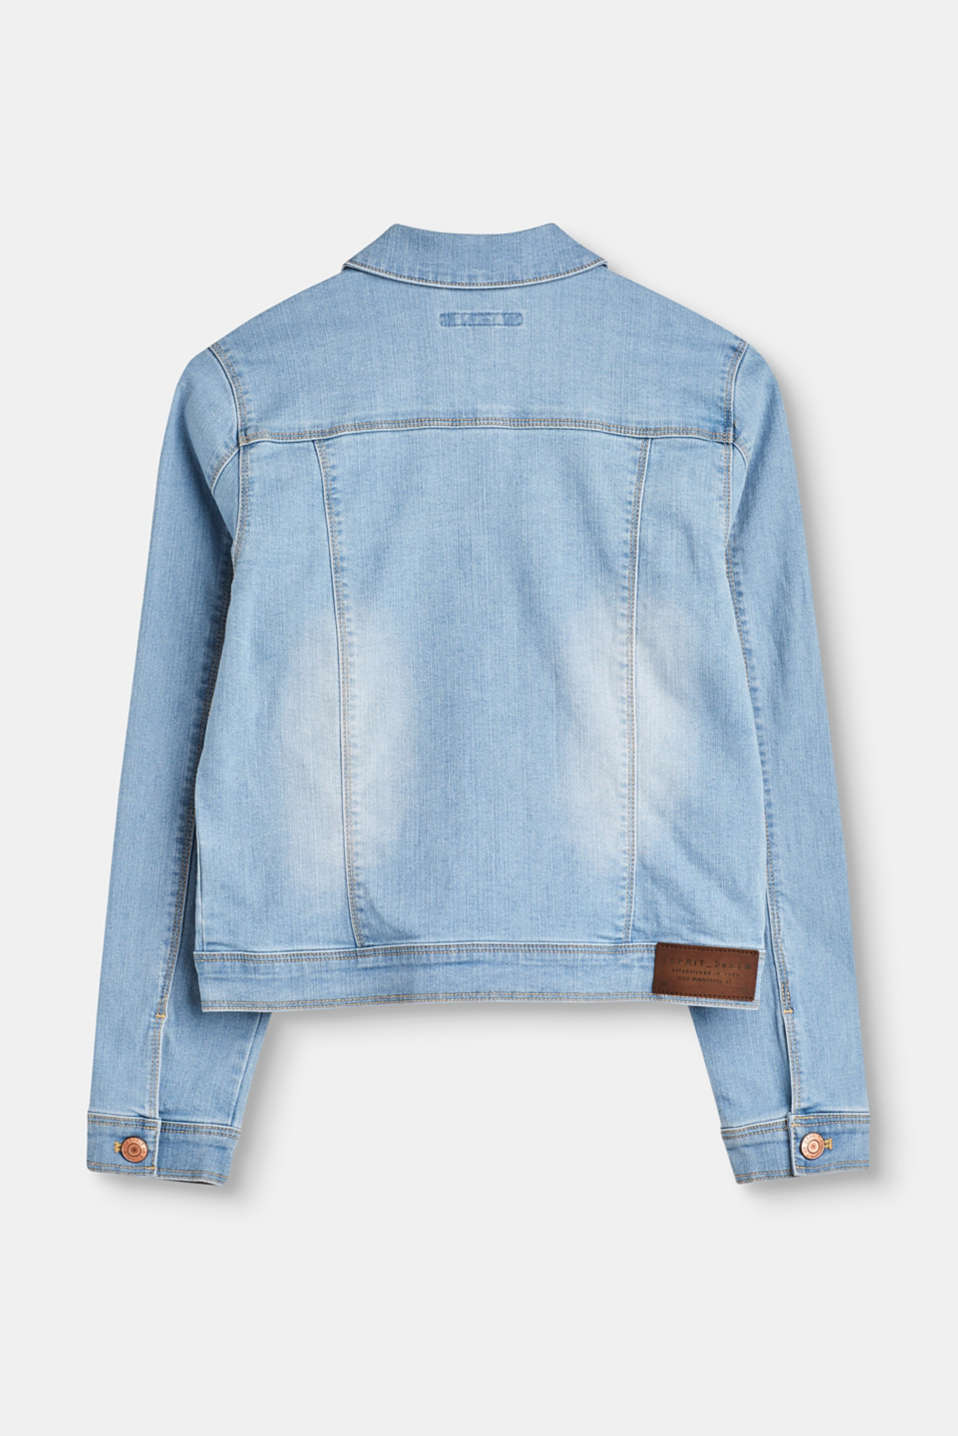 Light denim jacket with stretch for comfort